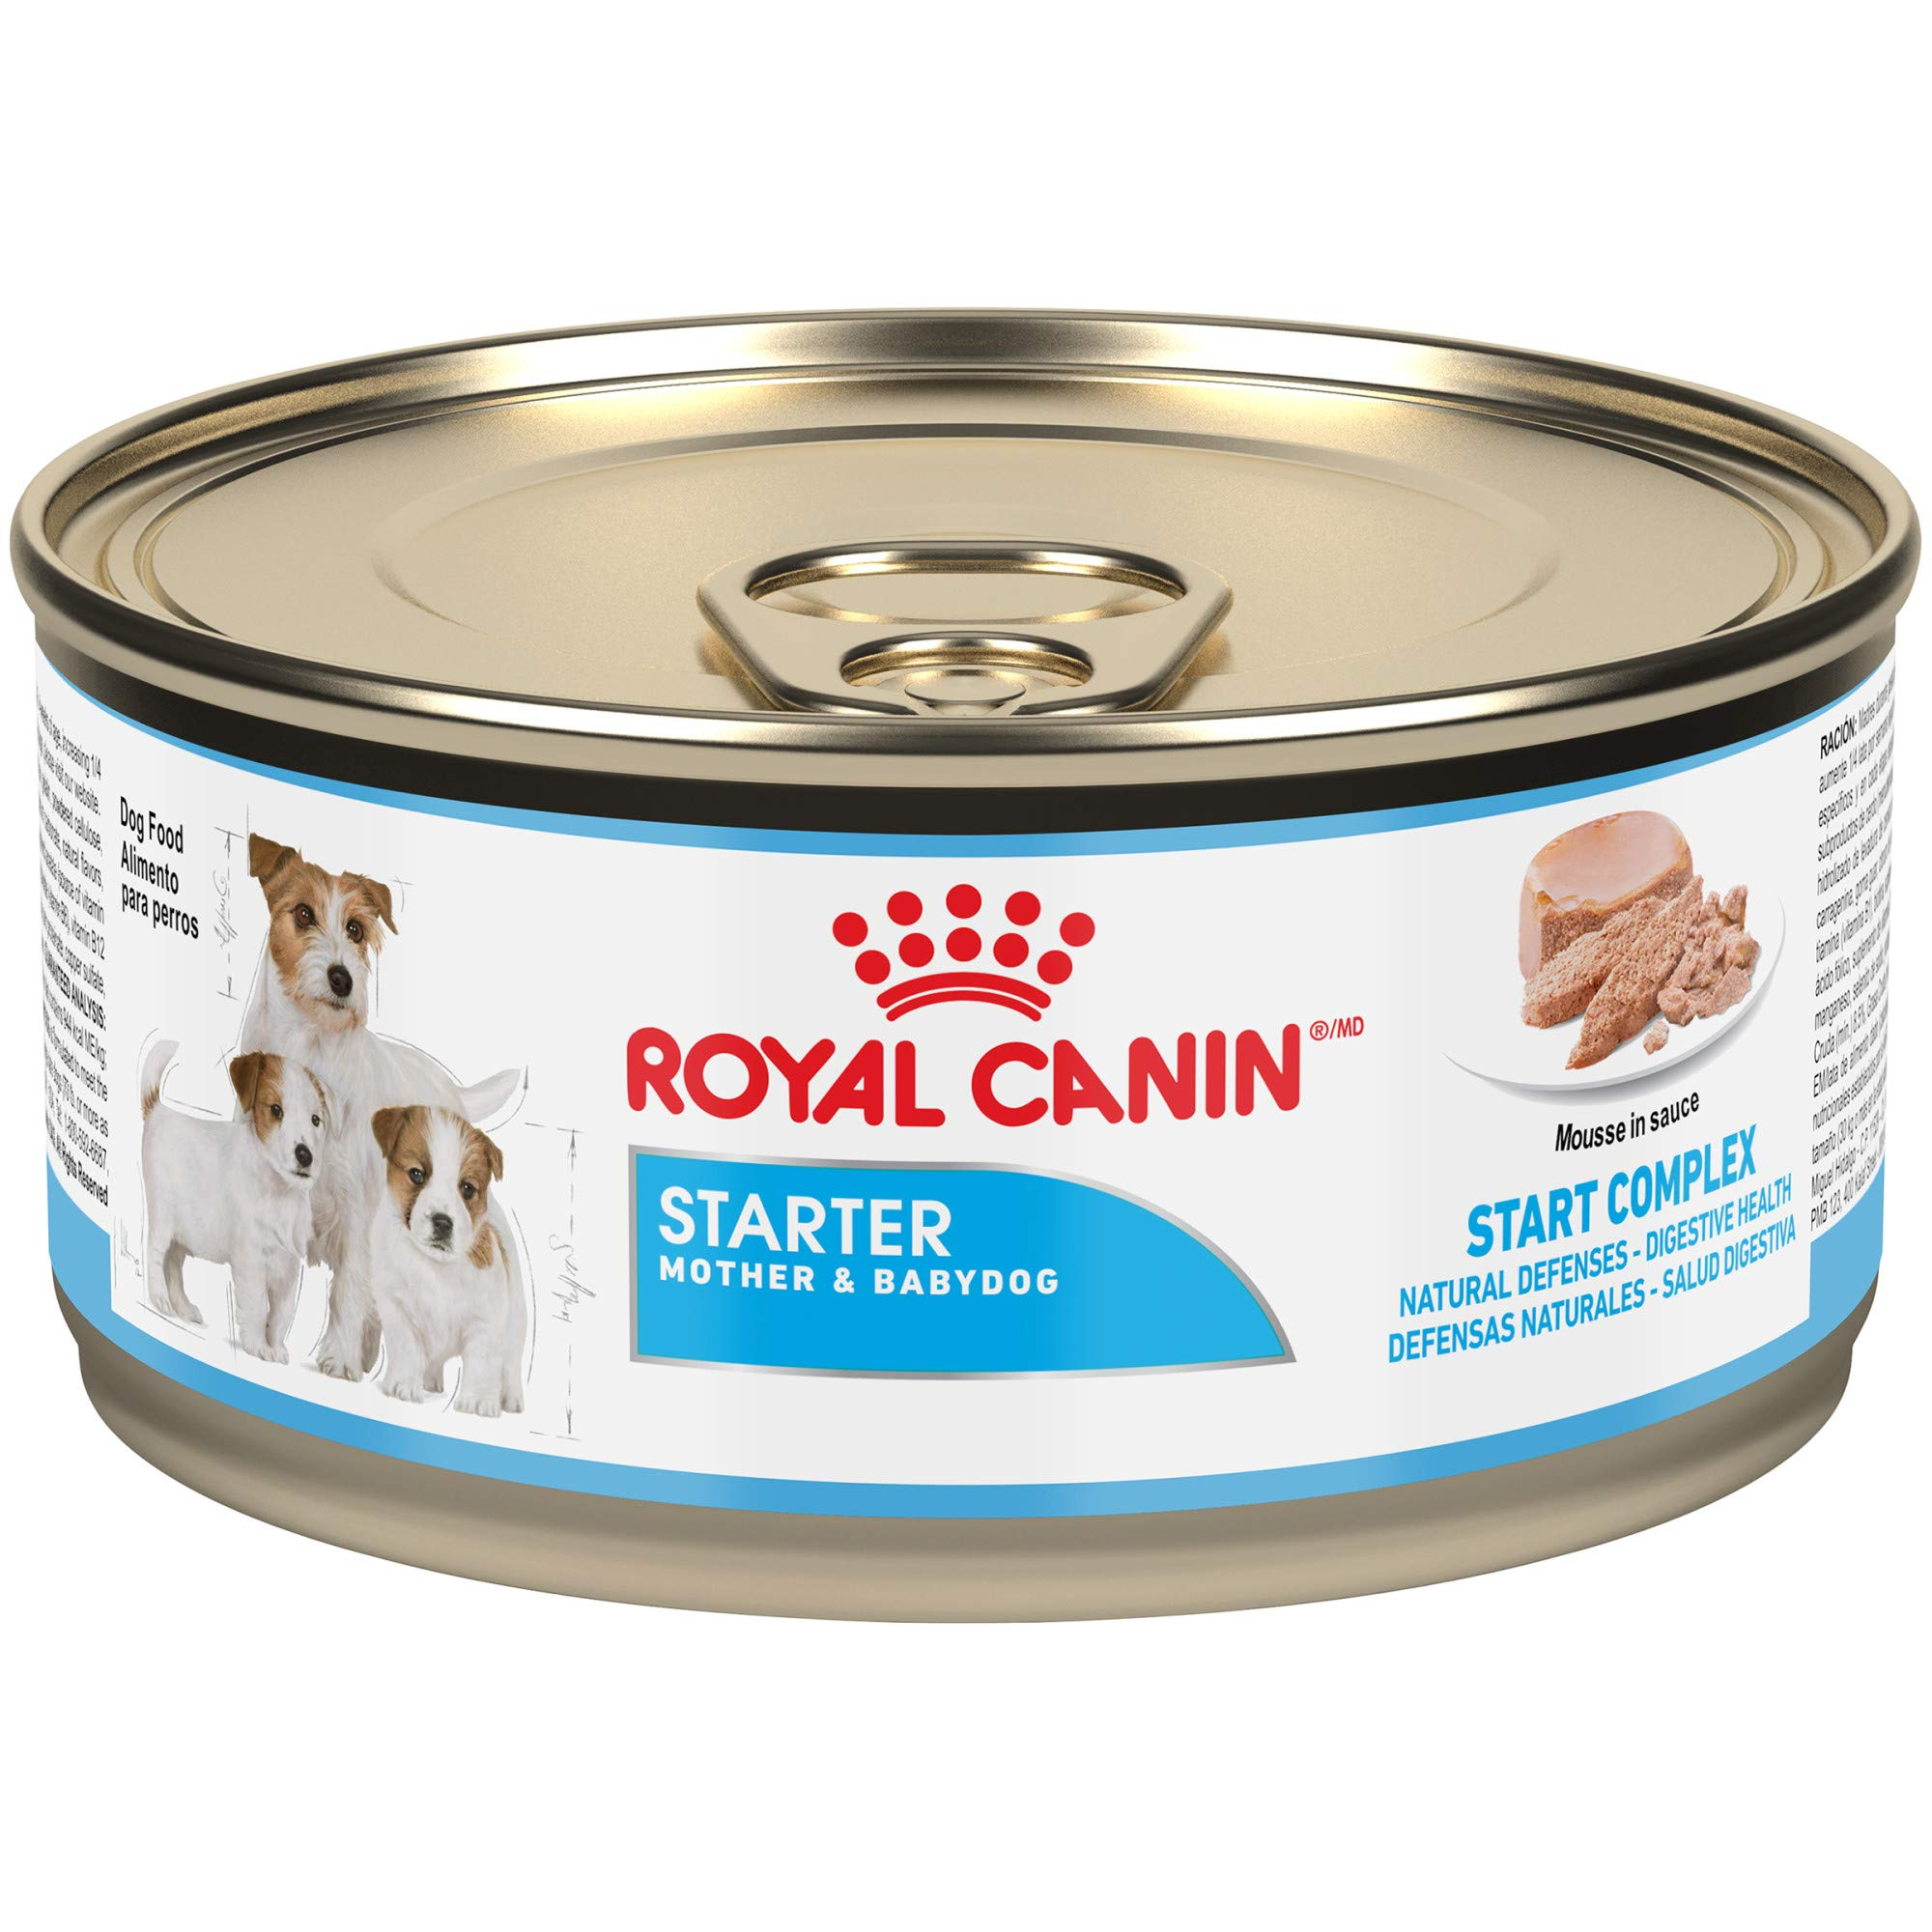 Royal Canin Size Health Nutrition Starter Mother and Babydog Canned Dog Food, 5.8 oz (Pack of 24) by Royal Canin